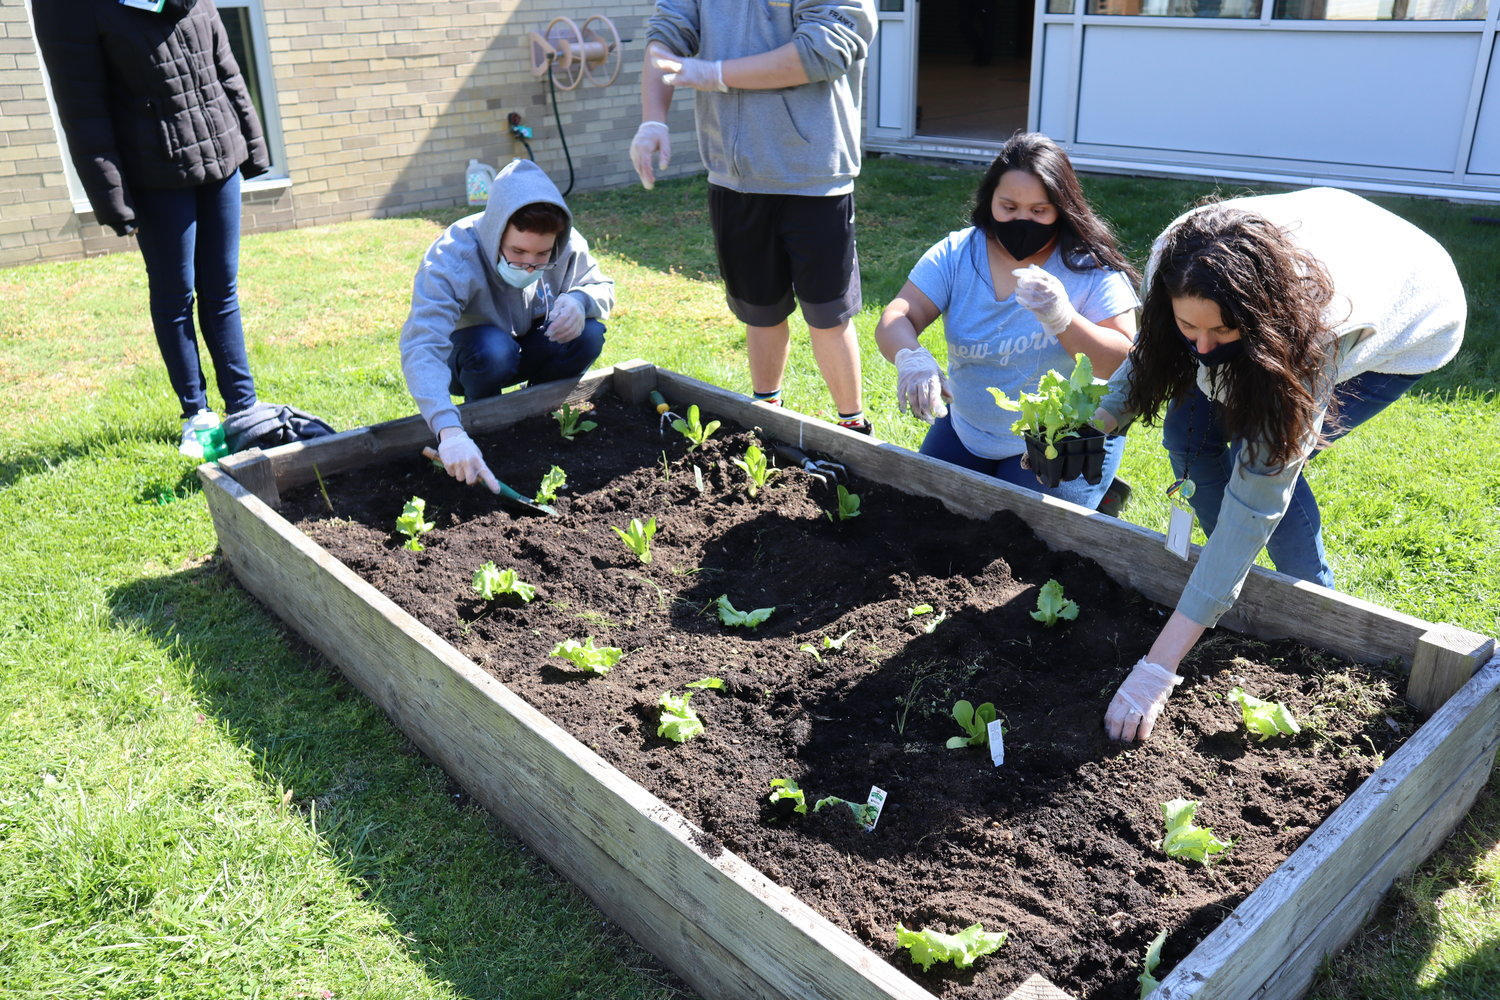 Students and advisors of the Meadowbrook Alternative Program in the Bellmore-Merrick Central High School District planted vegetables in the Brookside School courtyard on a sunny Thursday morning.